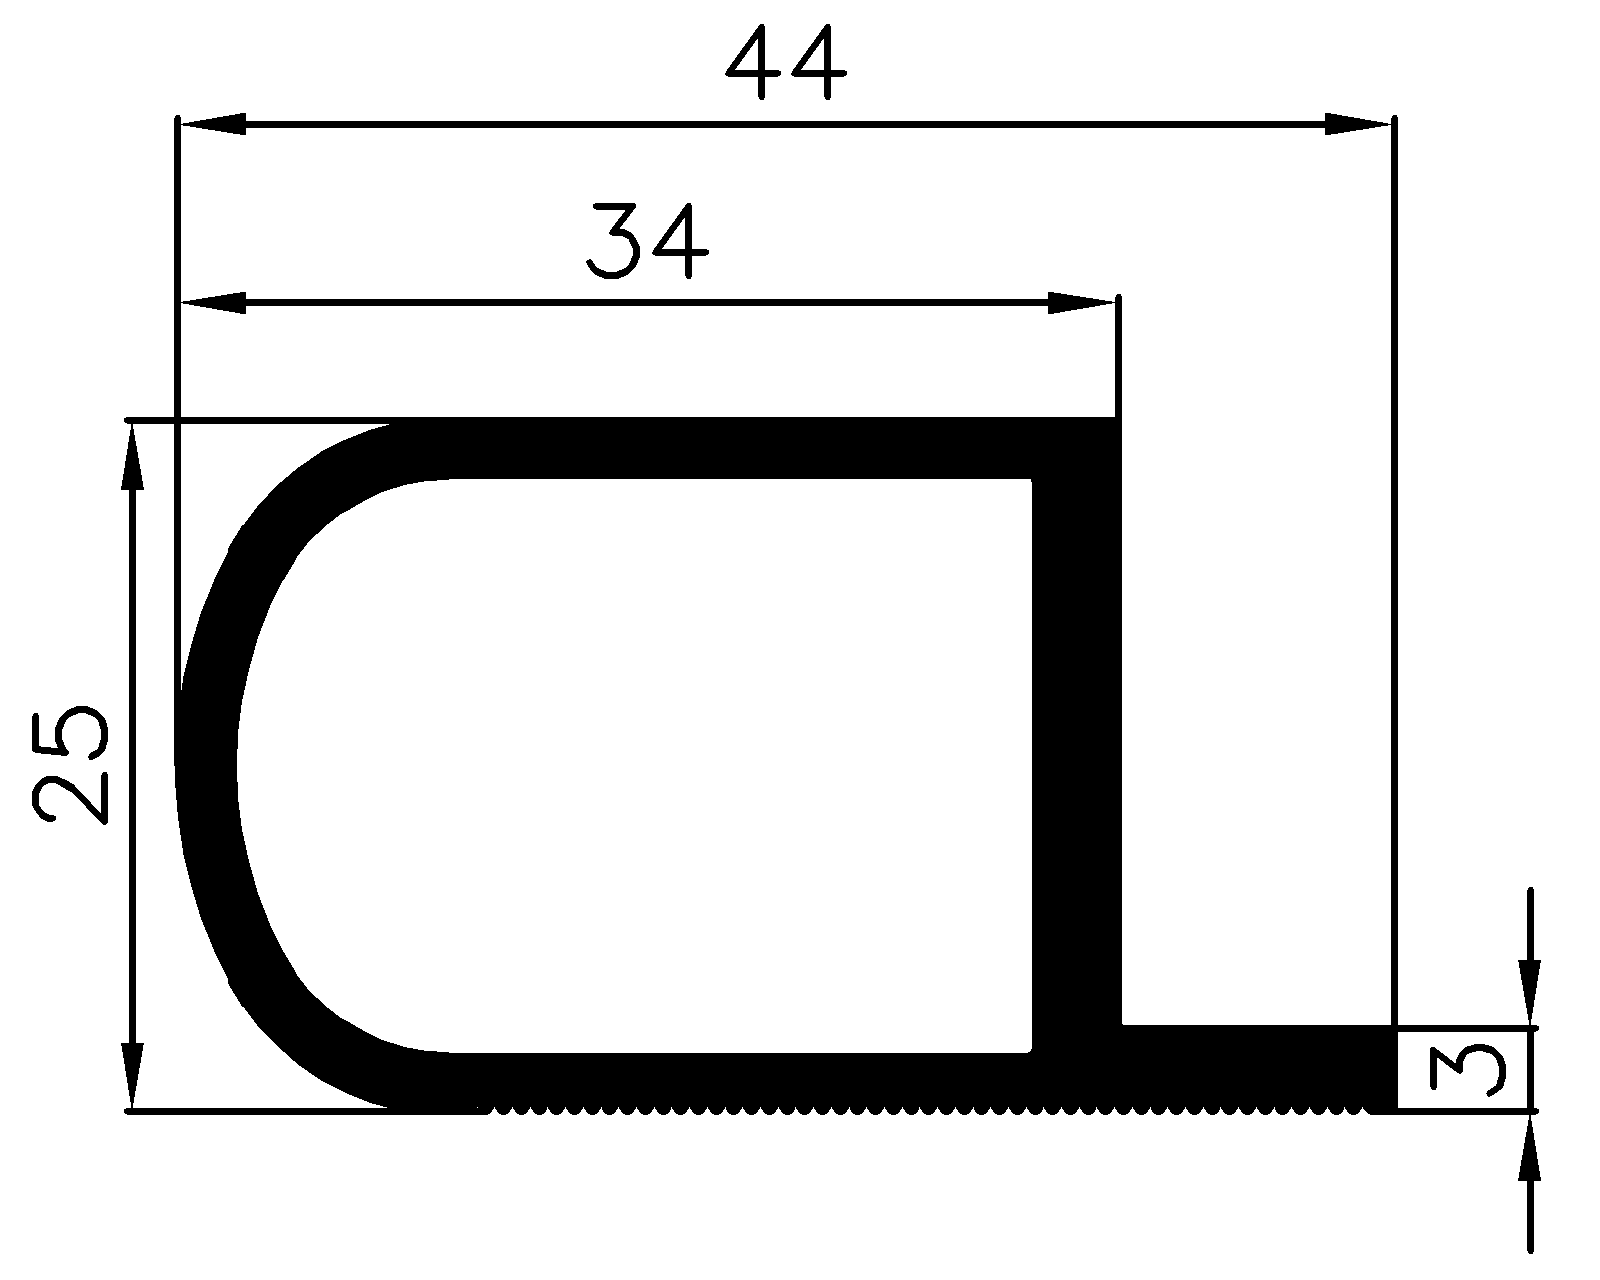 15170370KG - EPDM rubber profiles - Sliding door – finger-guard profiles